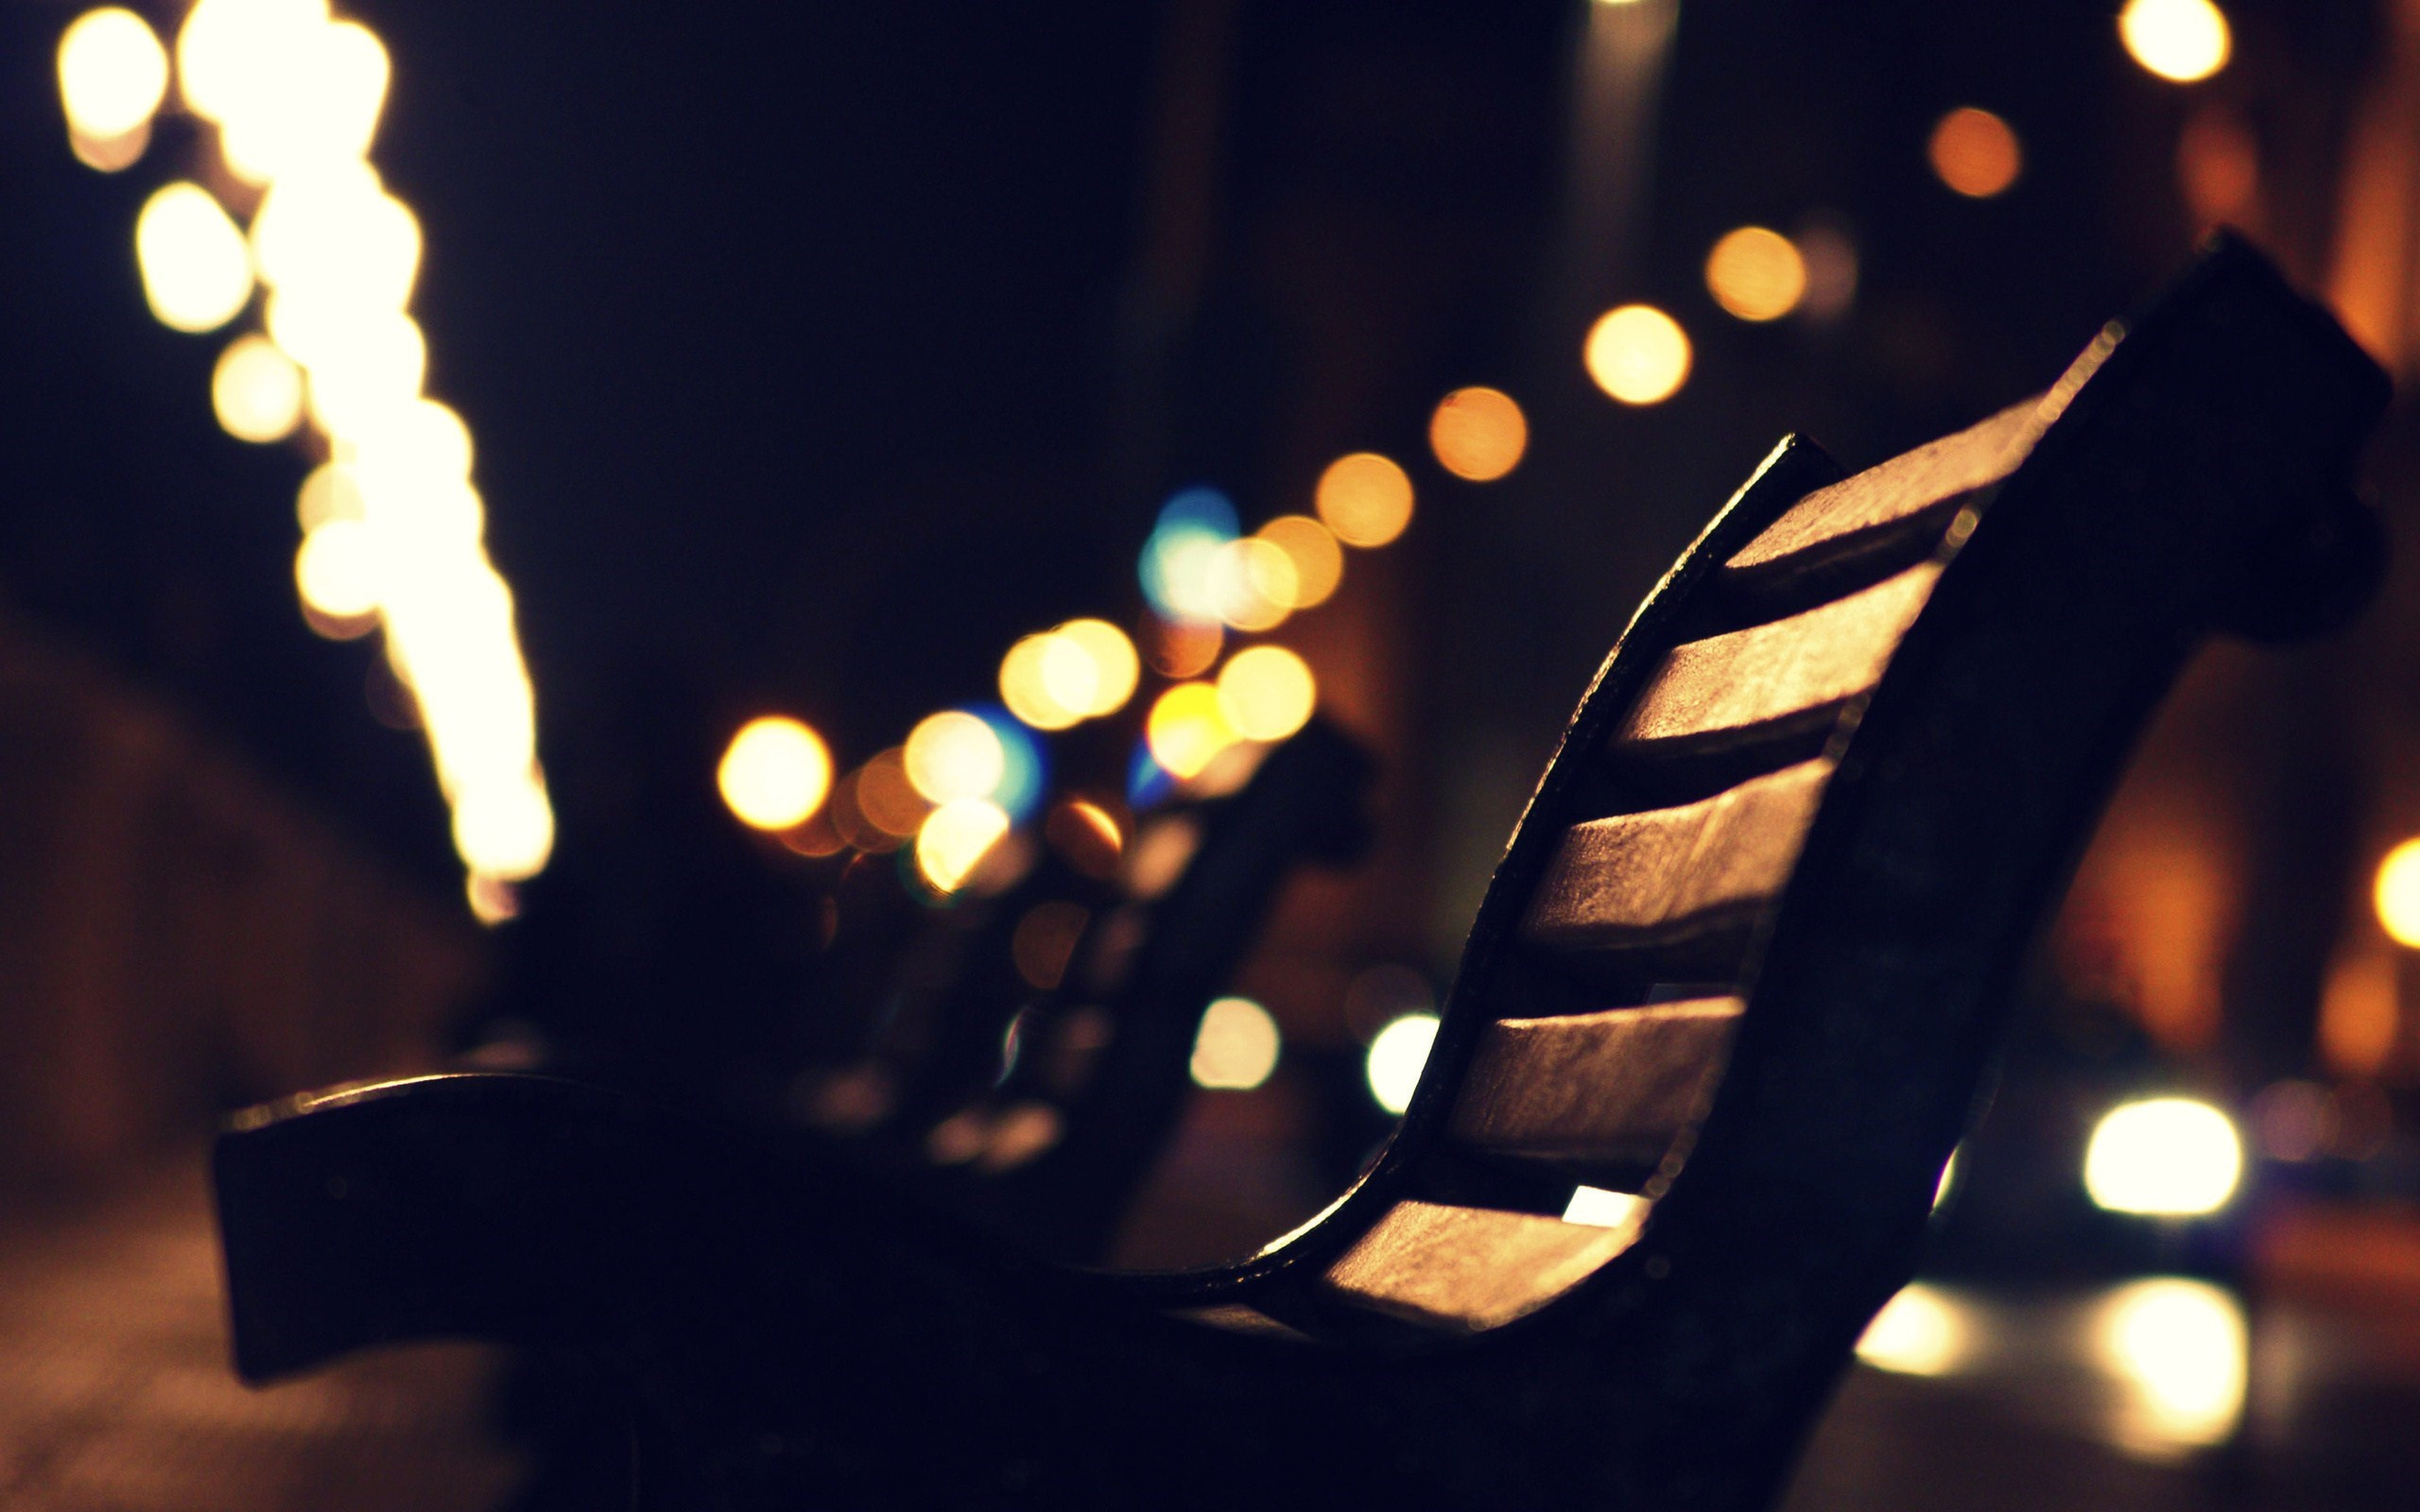 Bench City Street Night Lights Bokeh Photo